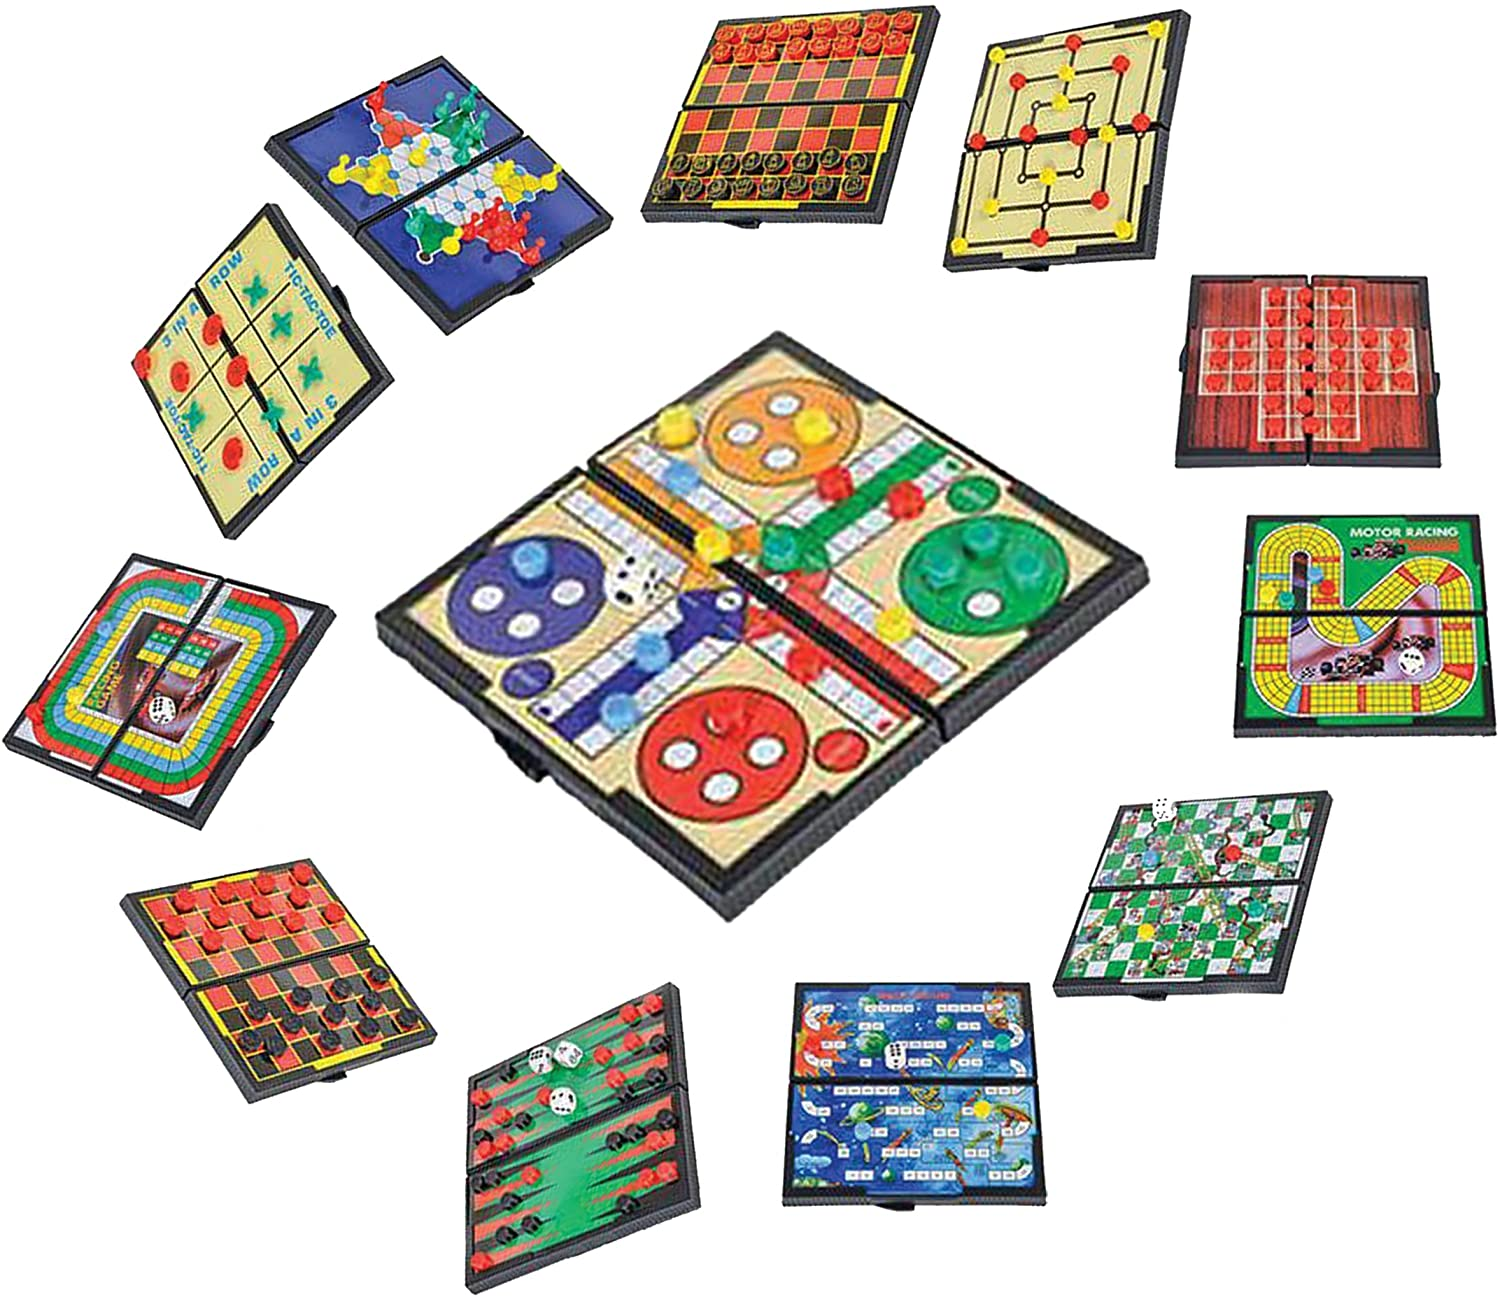 MAGNETIC TRAVEL BOARD GAMES-ROAD TRIP ENTERTAINMENT CHECKERS CHESS CHINESE CHECKERS TIC TAC TOE BACKGAMMON SNAKES AND LADDERS SOLITAIRE NINE MENS MORRIS AUTO RACING LUDO SPACE VENTURE